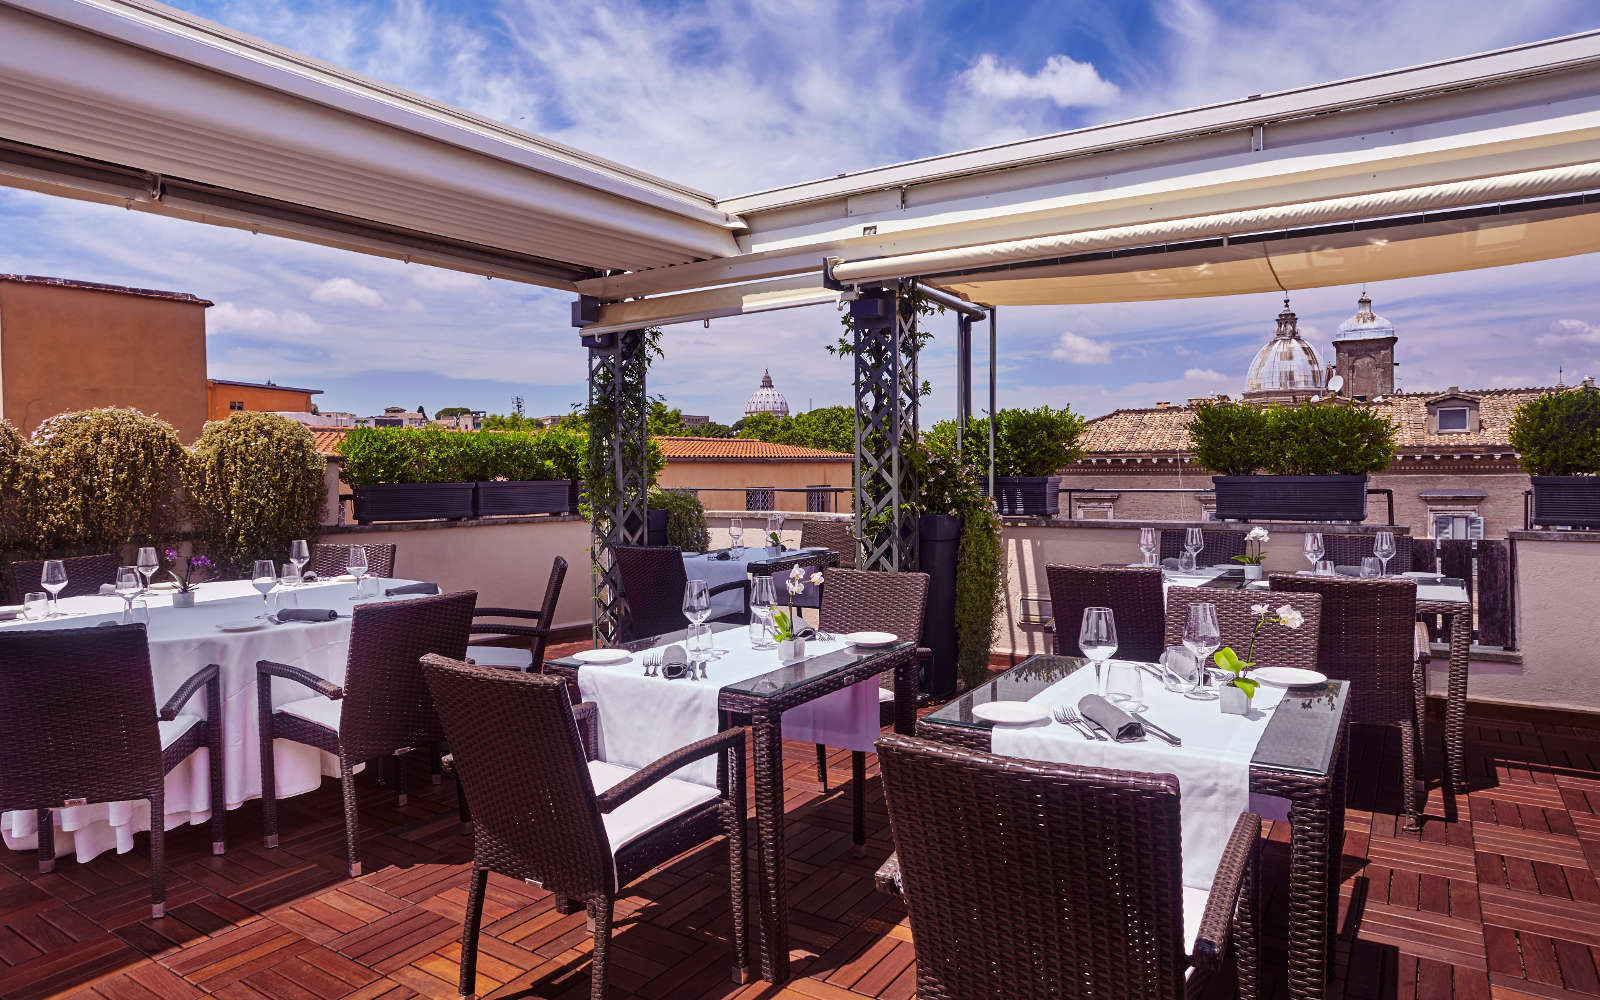 1461916807_Roof_Restaurant_Day_02_V2.jpg